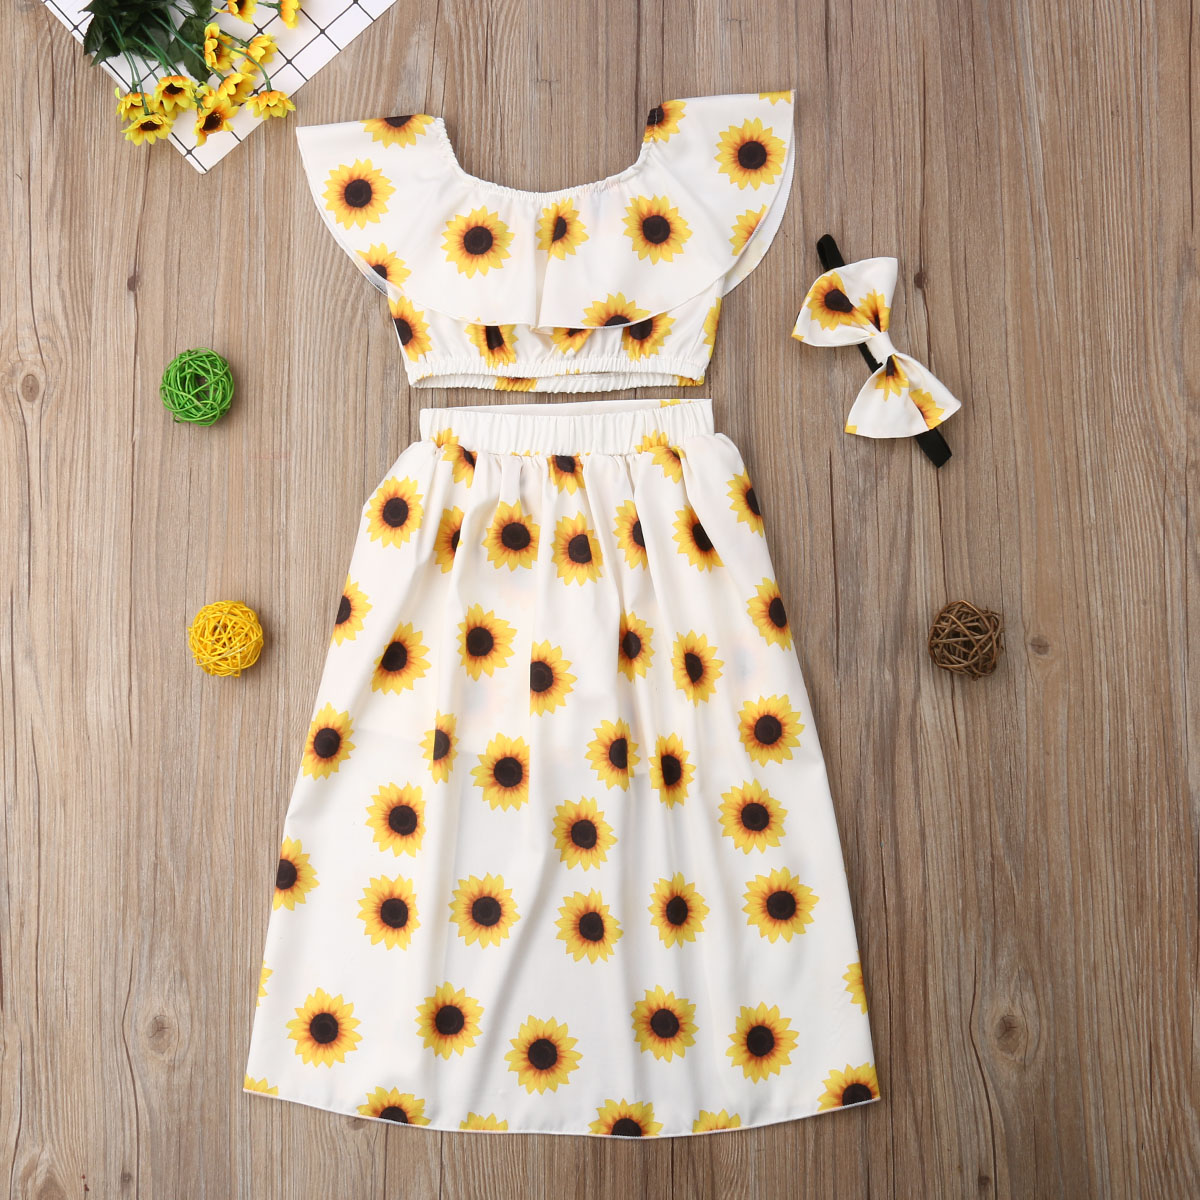 efdc252a9d2f Fashion Toddler Newborn Kids Baby Girl Sunflower Off Shoulder Crop Tops  Shorts Dress Headband Outfits Cute Clothes-in Clothing Sets from Mother &  Kids on ...